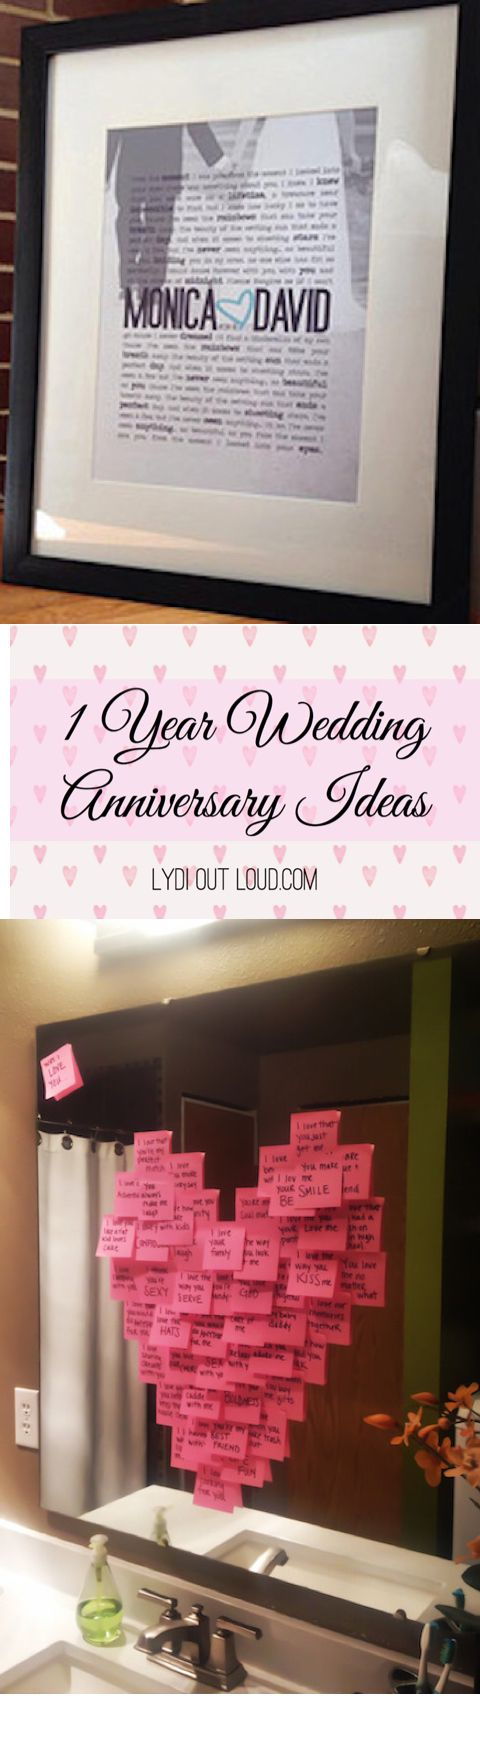 this is such a cute idea for the traditional first anniversary